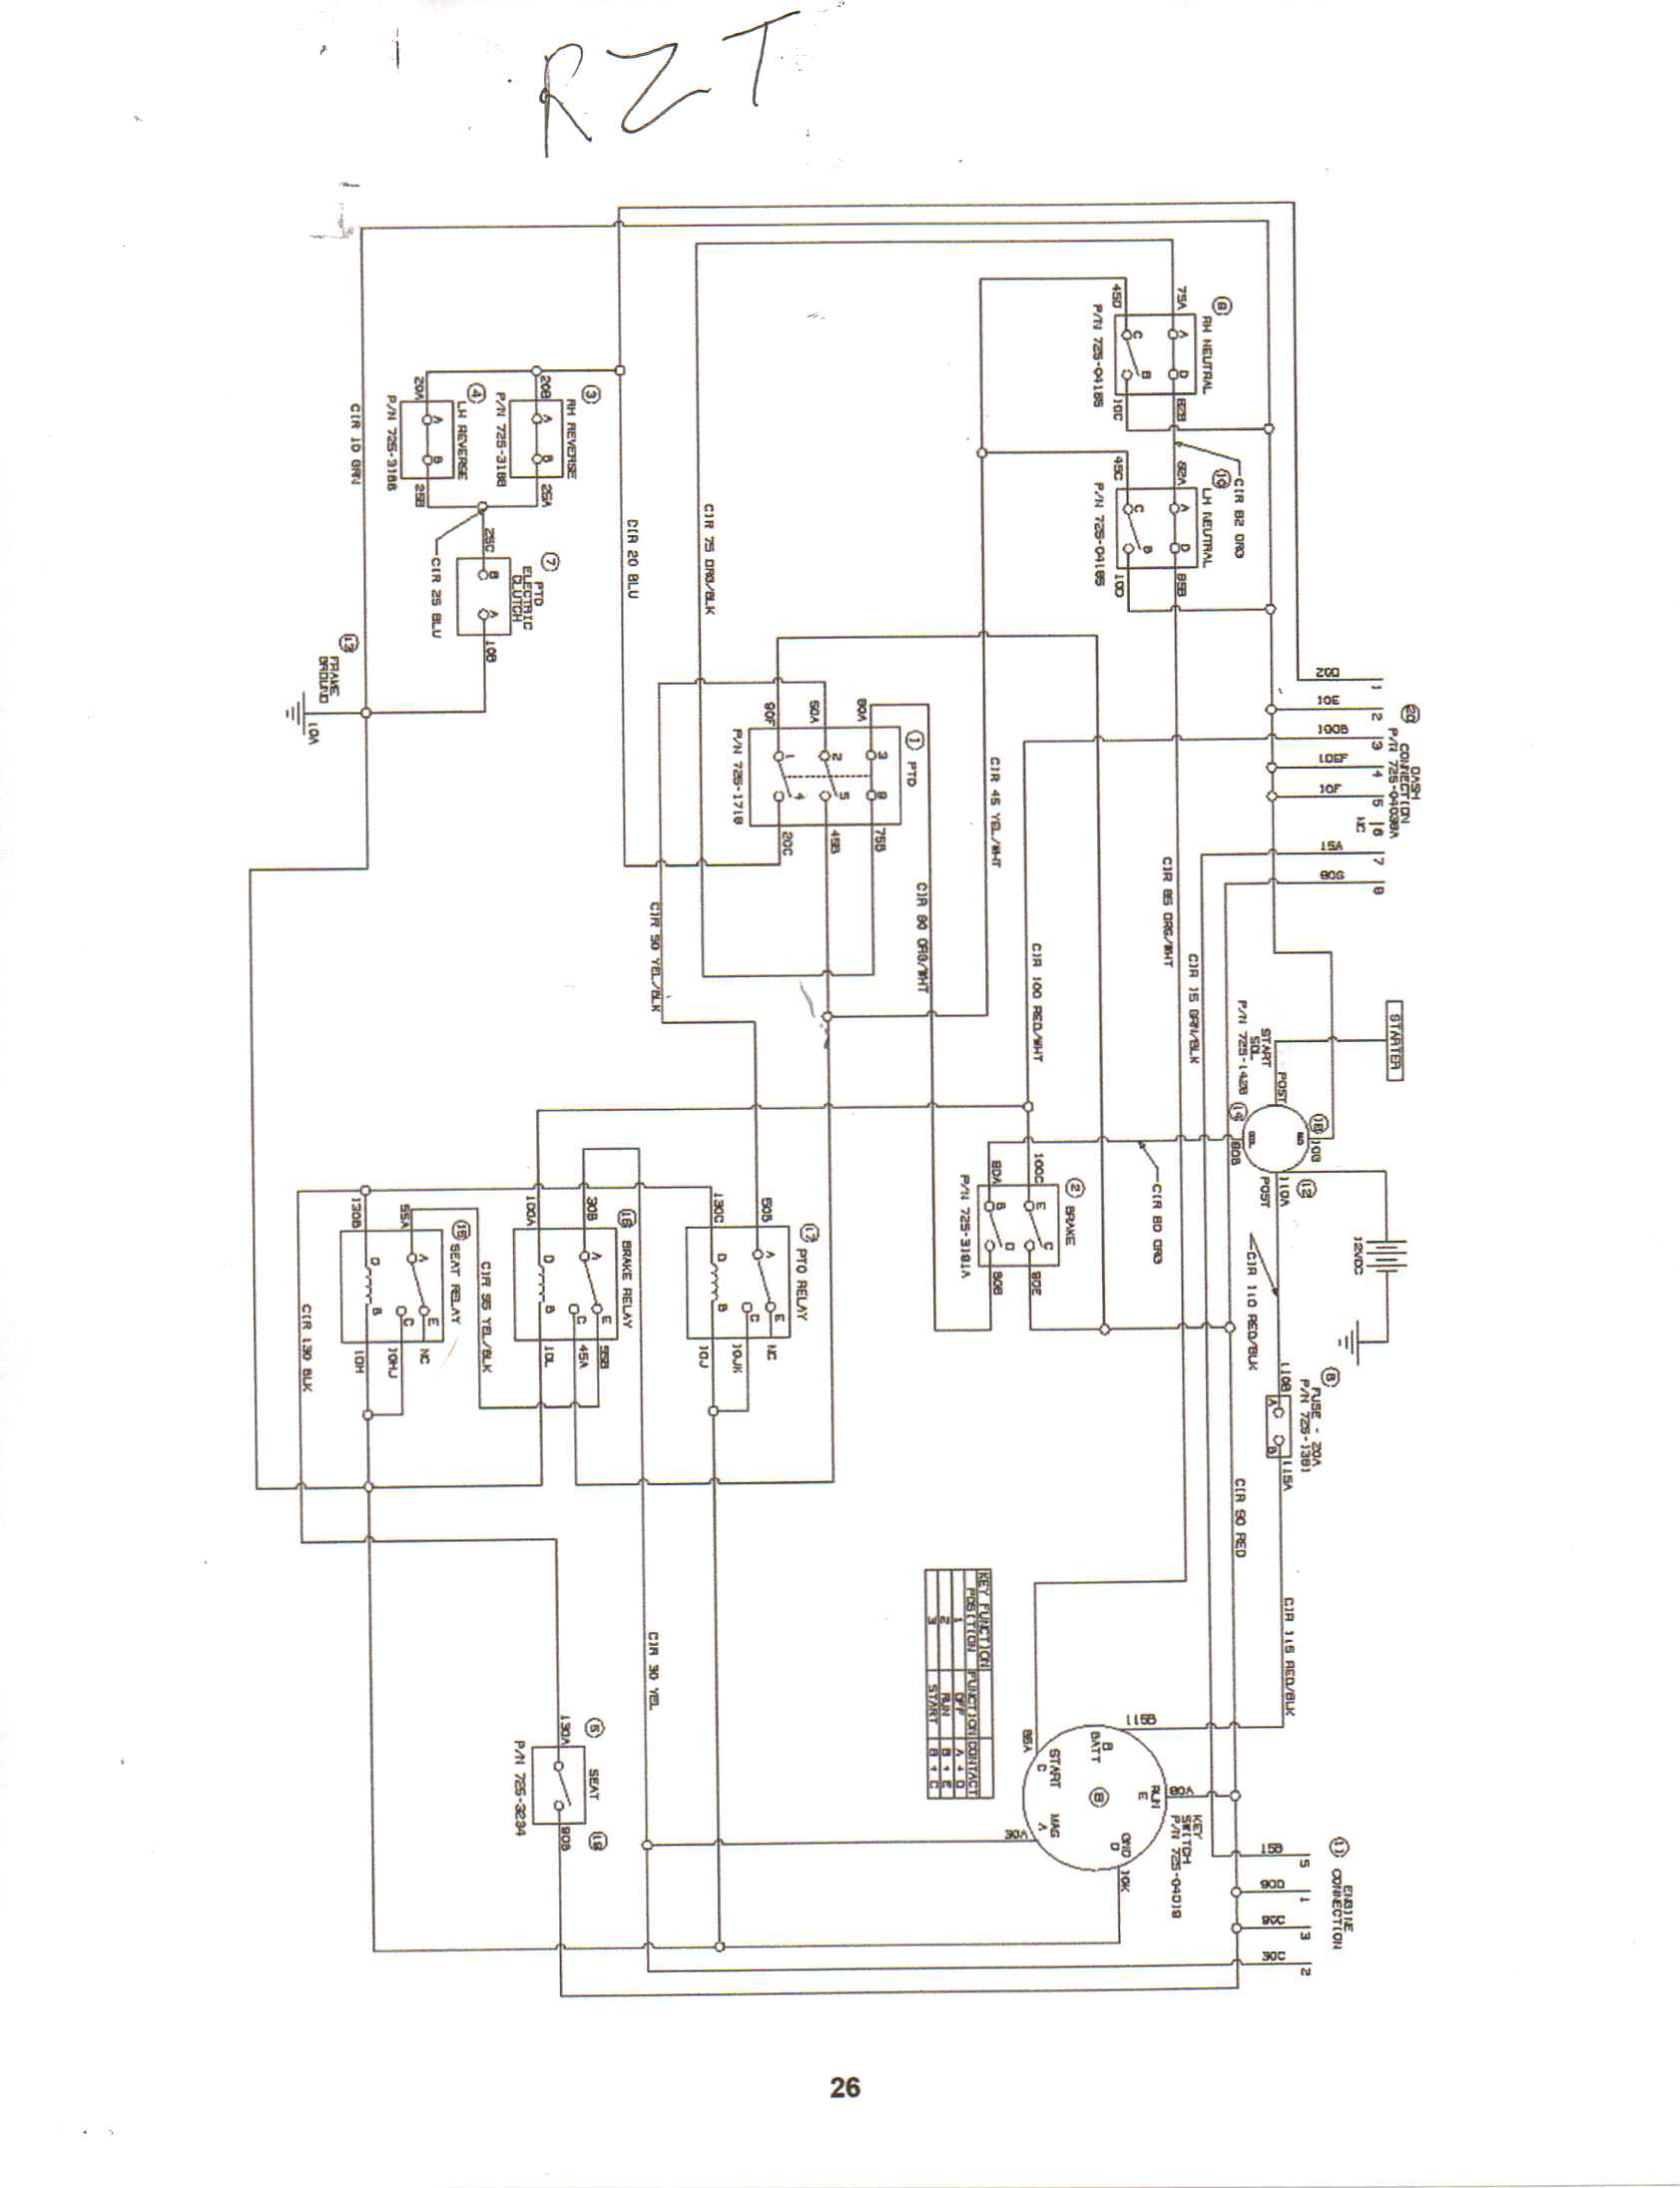 ☑ ih 1440 combine wiring diagram hd quality ☑ cluster-diagrams .twirlinglucca.it  twirlinglucca.it